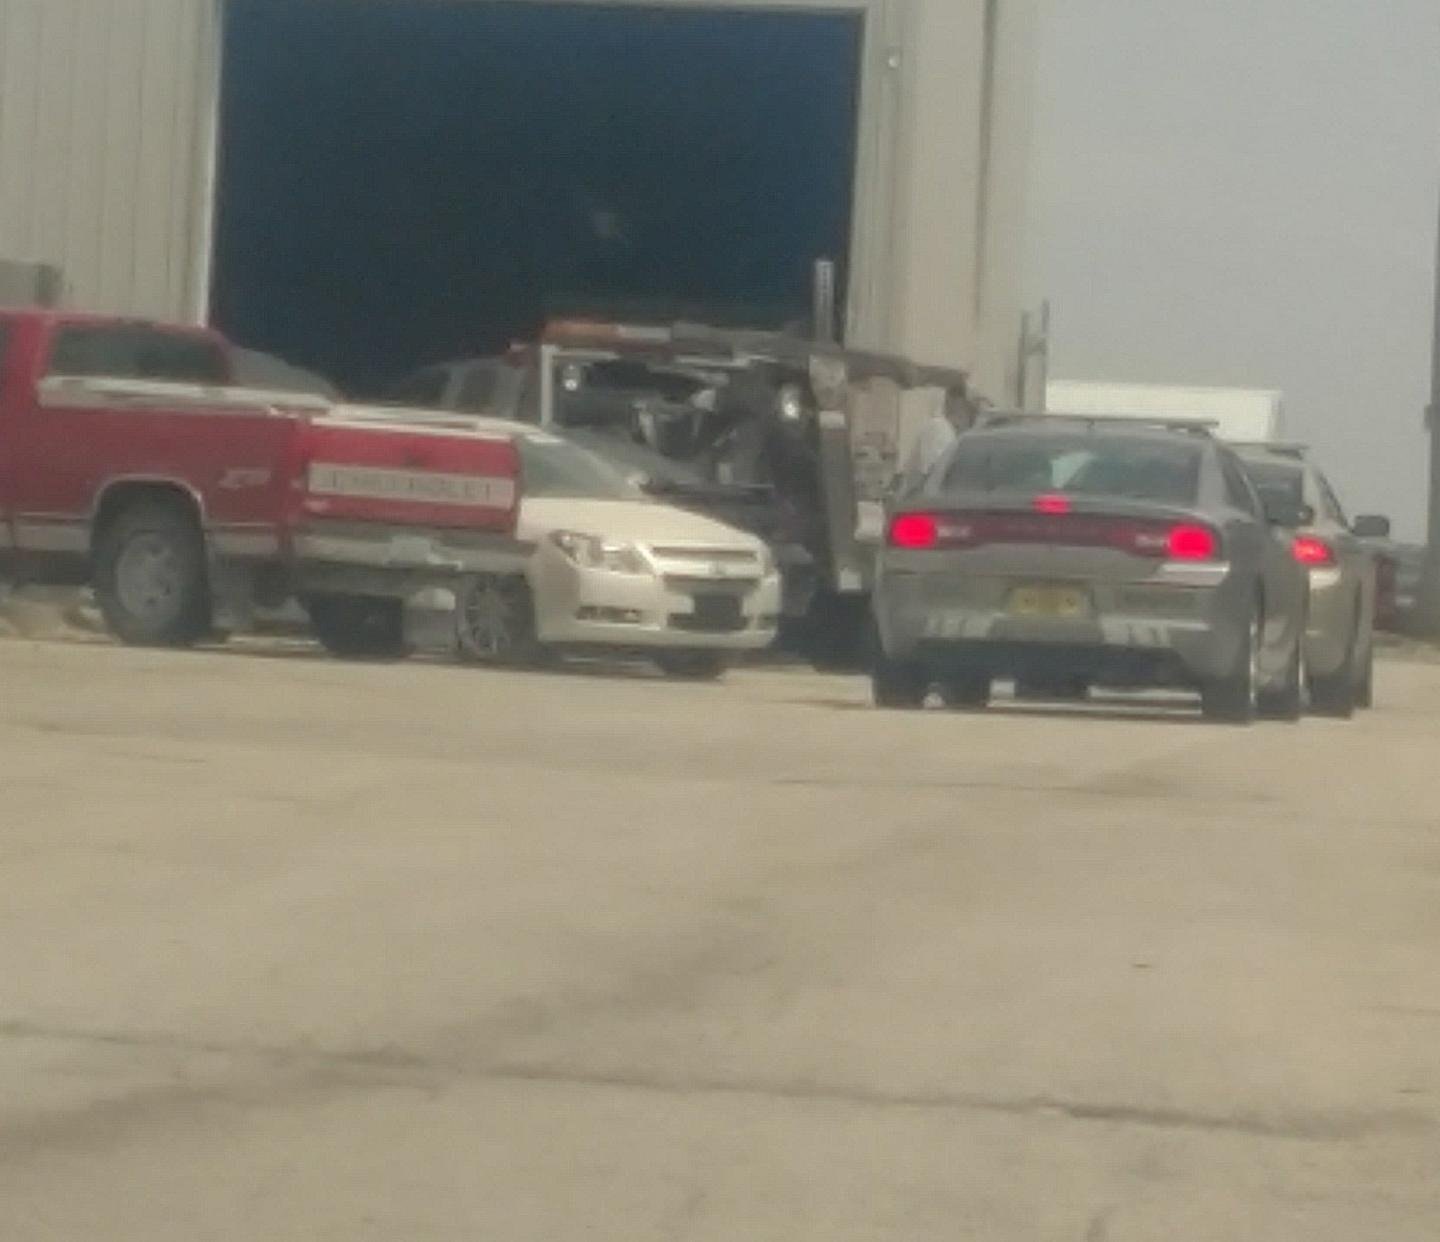 State Patrol investigators have arrived at Roadside Towing and Collision in Winthrop to inspect the vehicles in last night's crash.